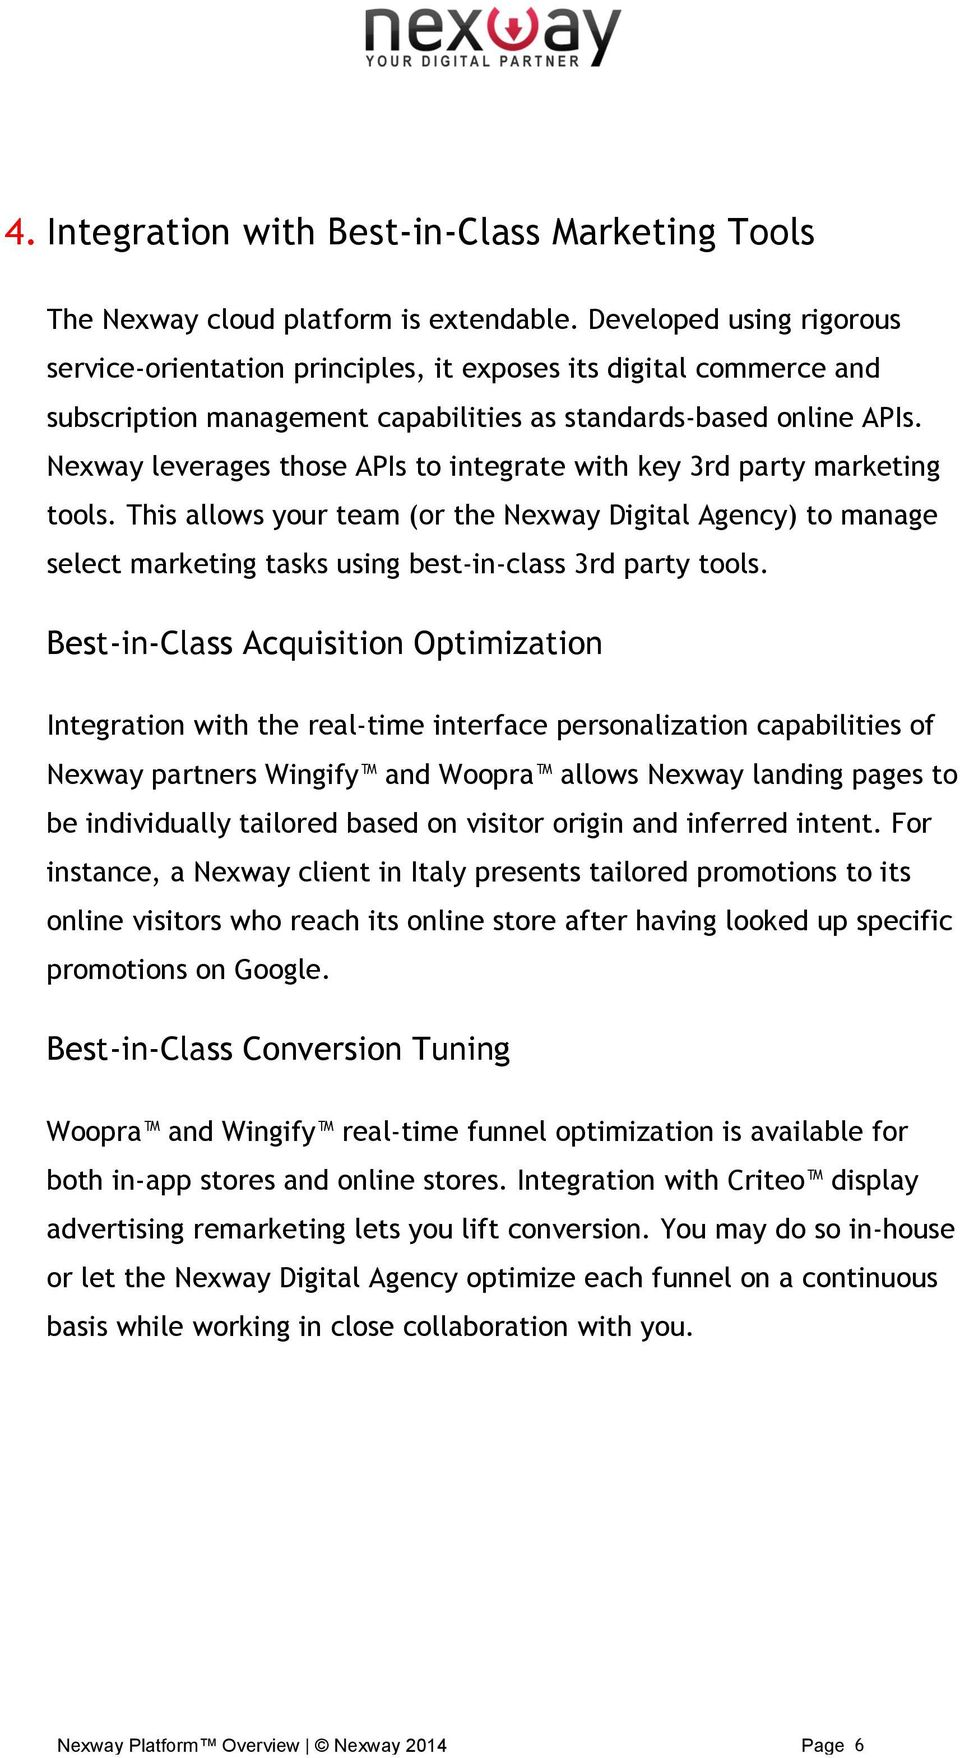 Nexway leverages those APIs to integrate with key 3rd party marketing tools. This allows your team (or the Nexway Digital Agency) to manage select marketing tasks using best-in-class 3rd party tools.